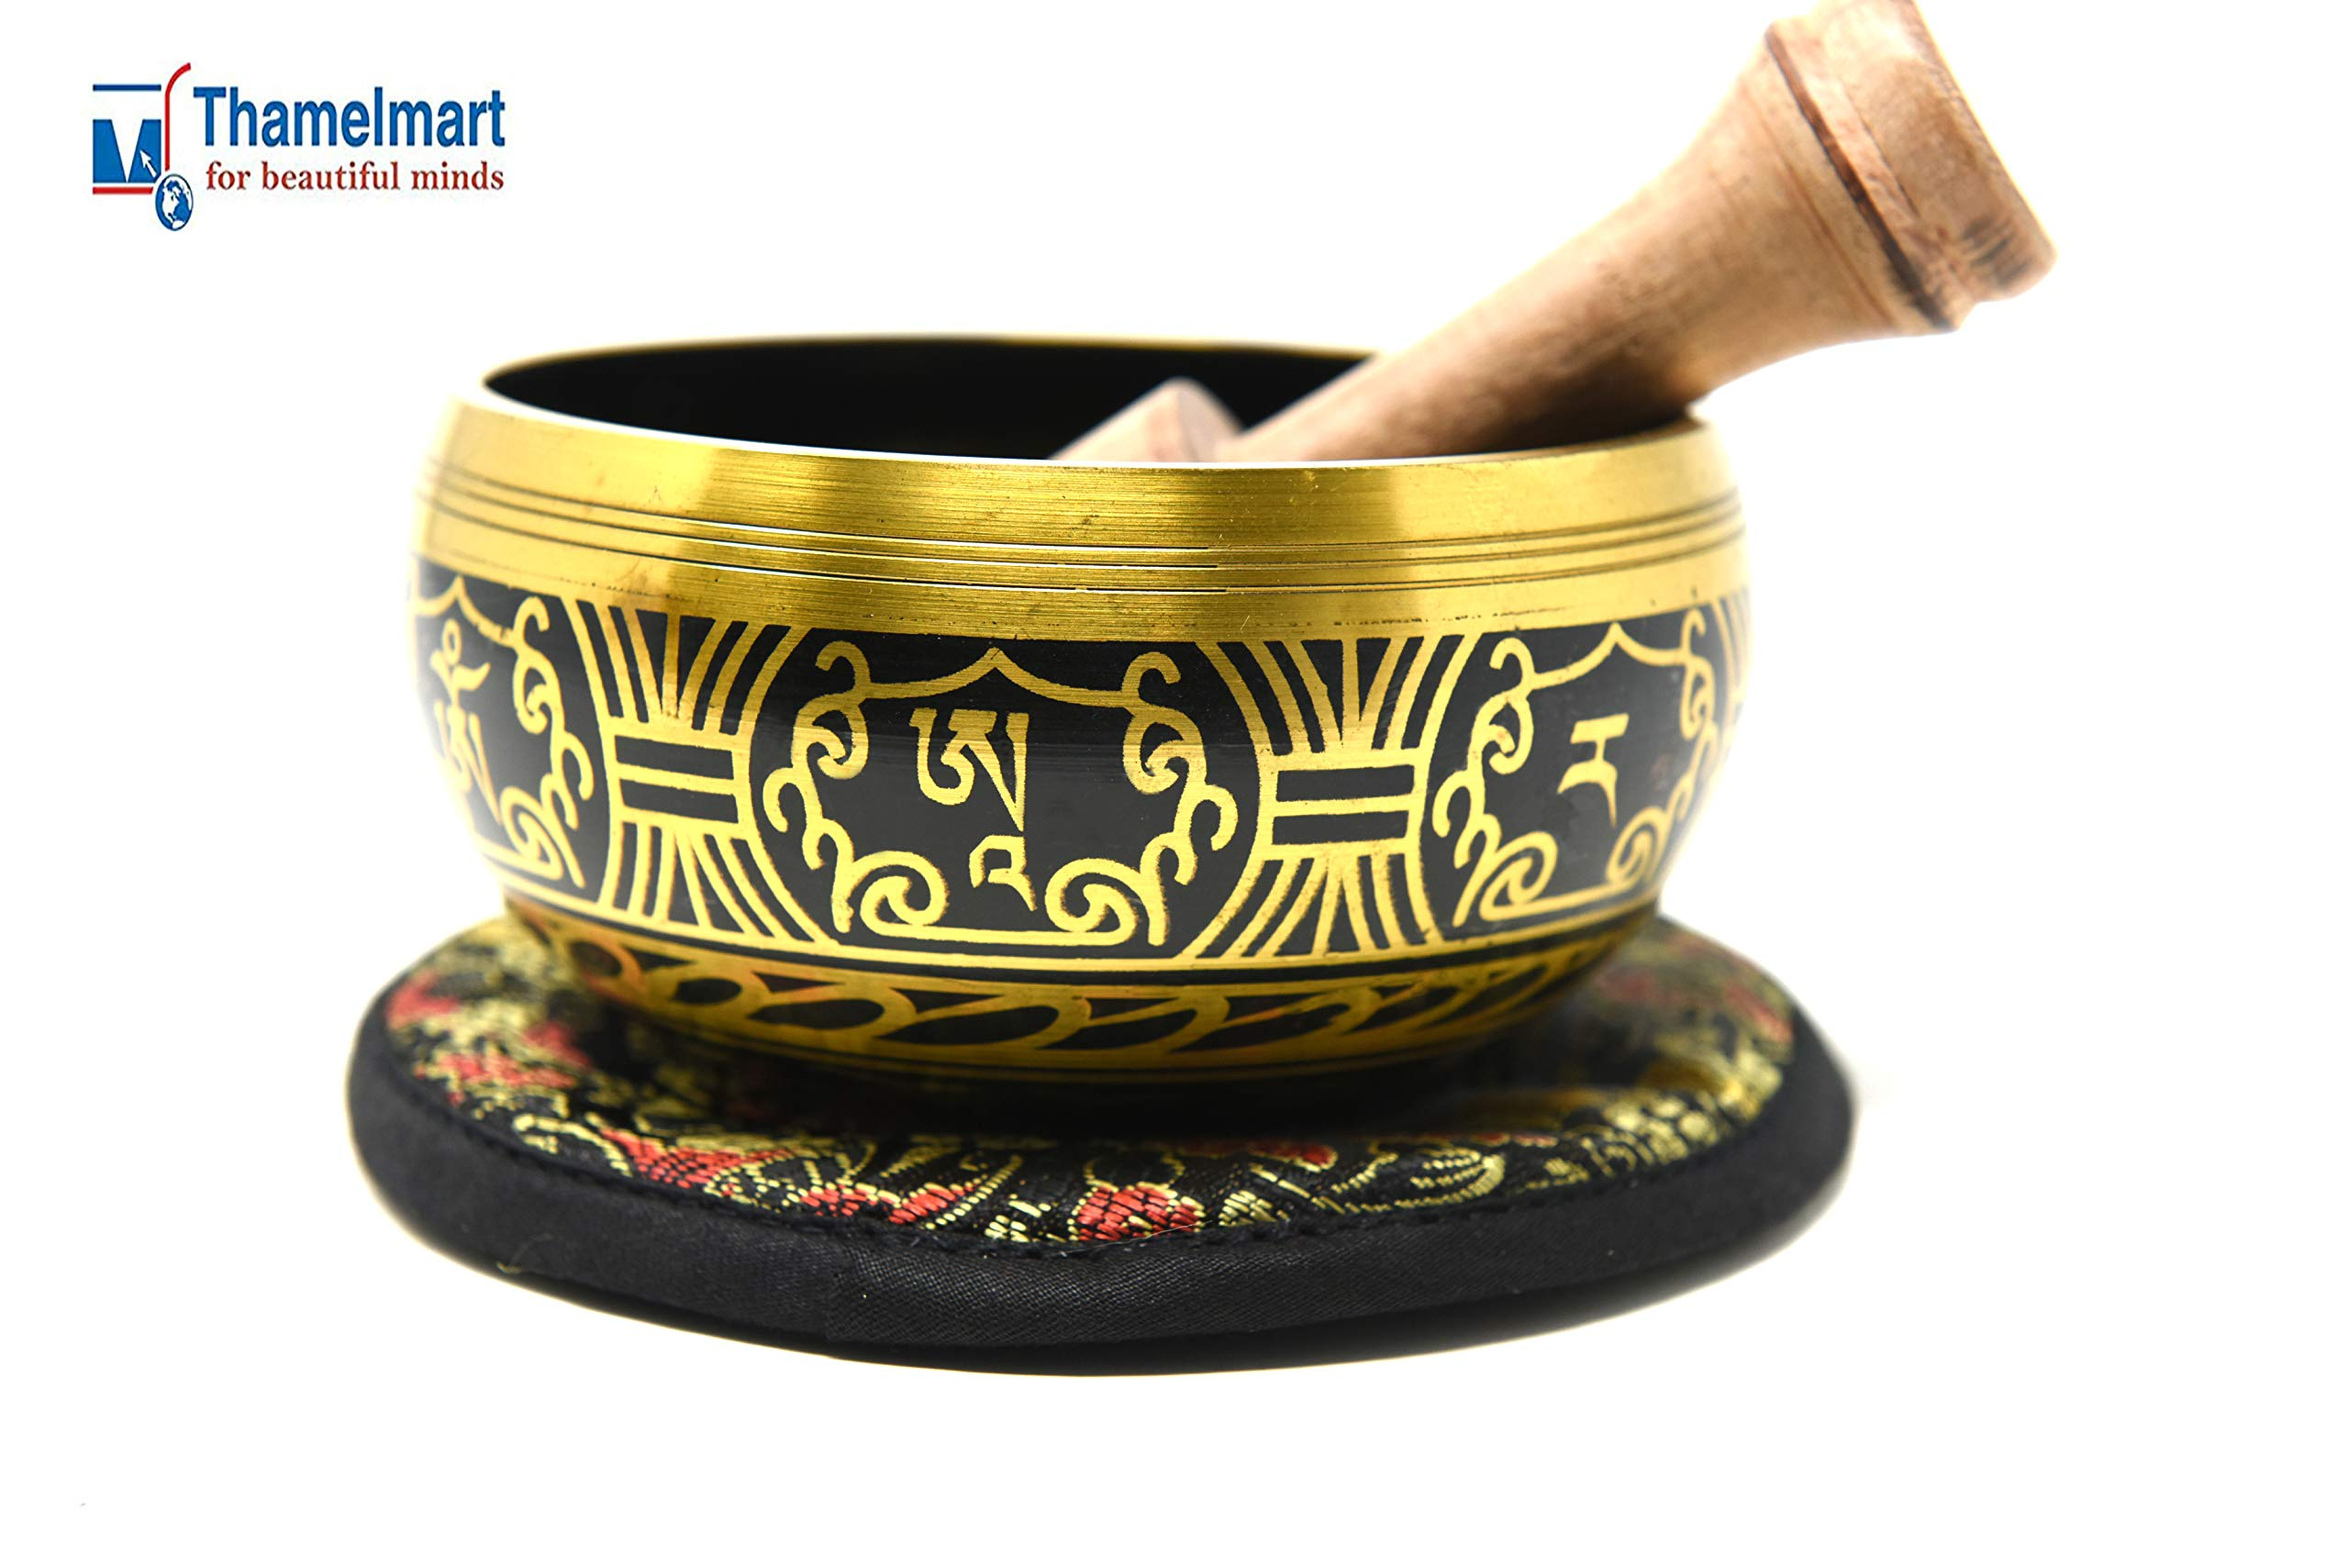 4'' Exquisite Tibetan Singing Bowl Set for Meditation ~Tibetan Om Mantra & Dorje Painted ~ Silk Cushion & Wooden Mallet Included ~Handmade in Nepal by Thamelmart by TM THAMELMART FOR BEAUTIFUL MINDS